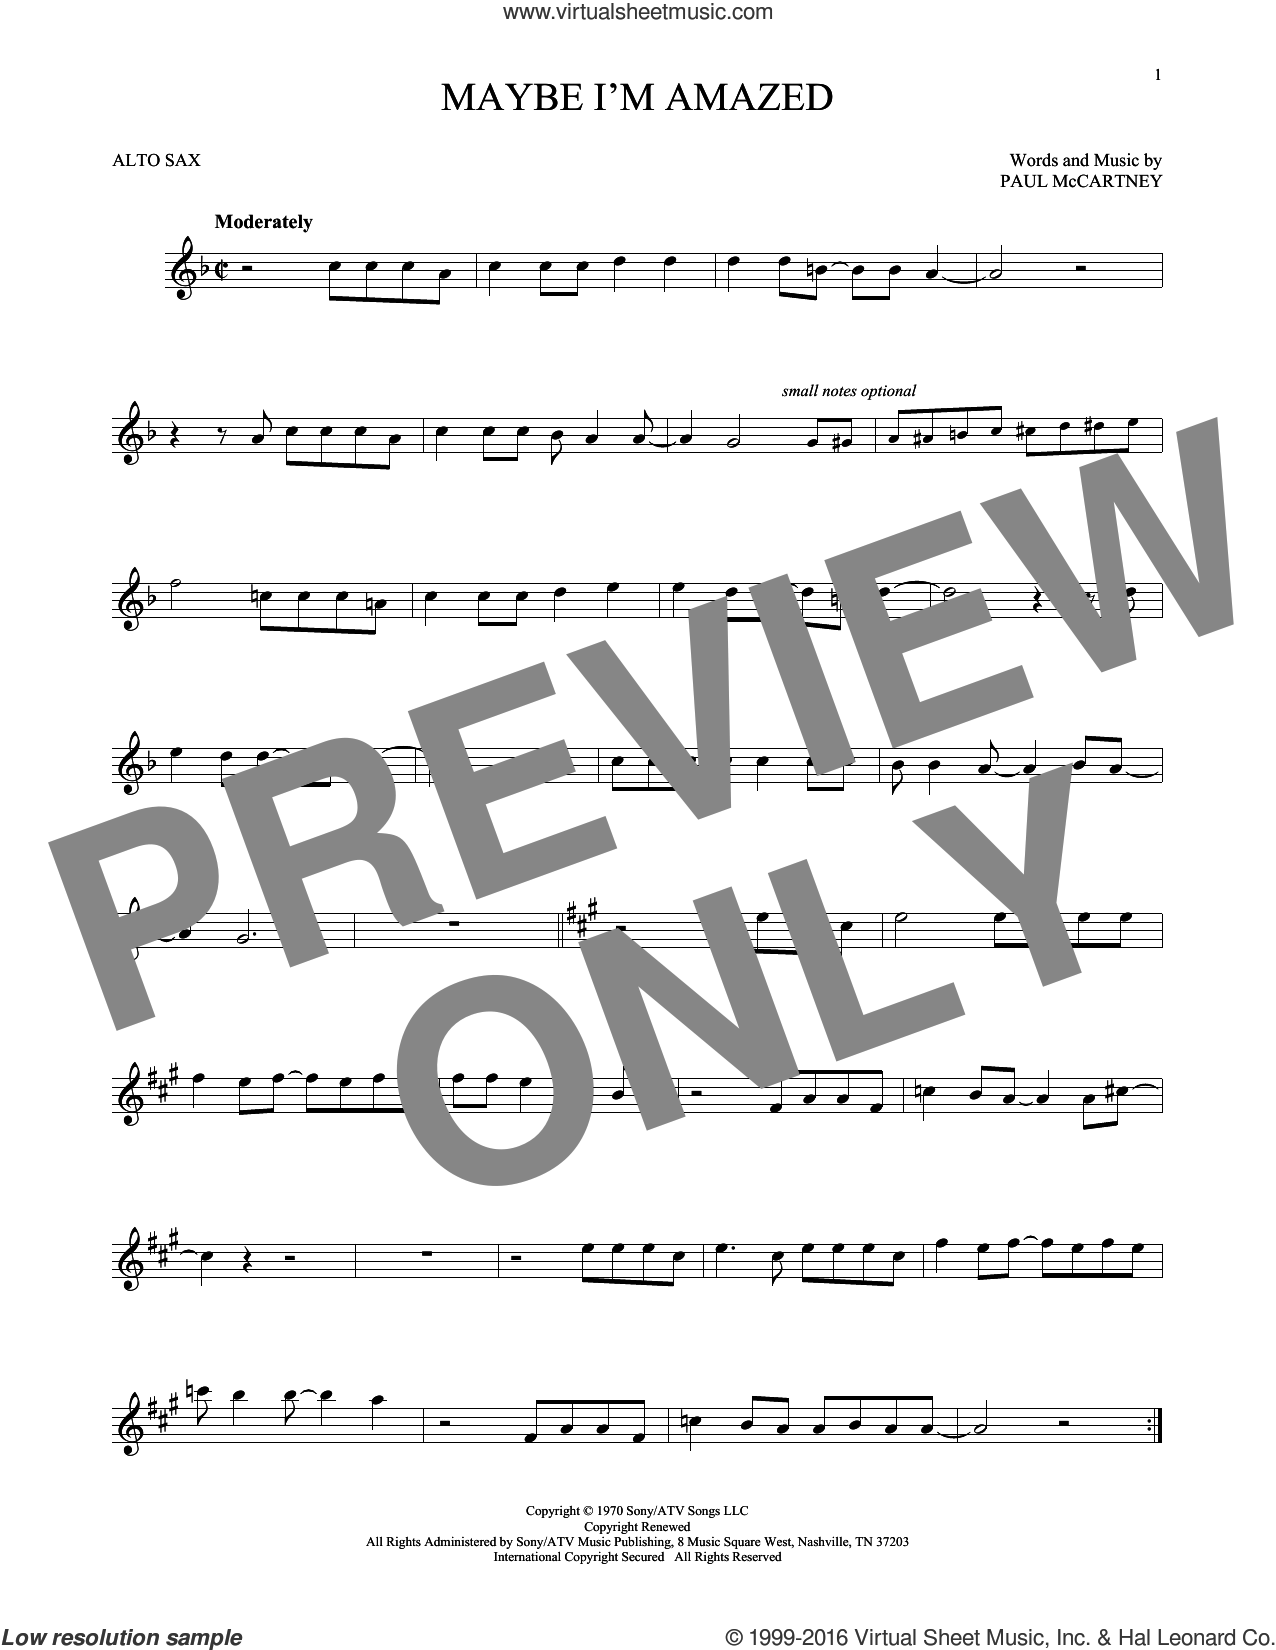 Maybe I'm Amazed sheet music for alto saxophone solo by Paul McCartney, intermediate skill level